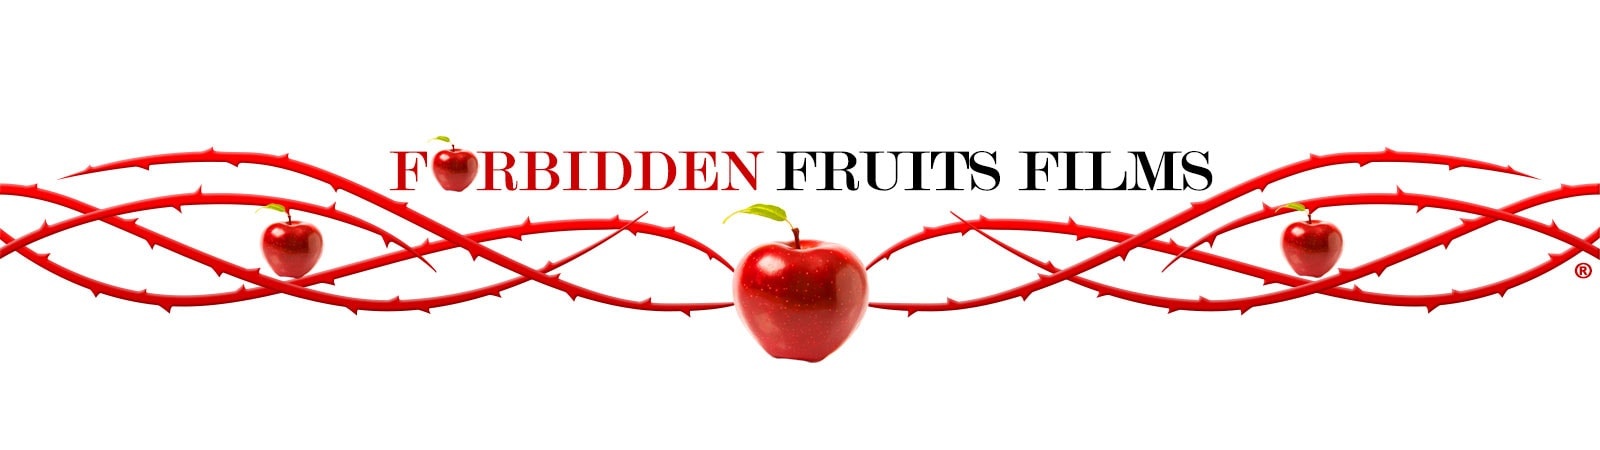 Forbidden Fruits Films Logo